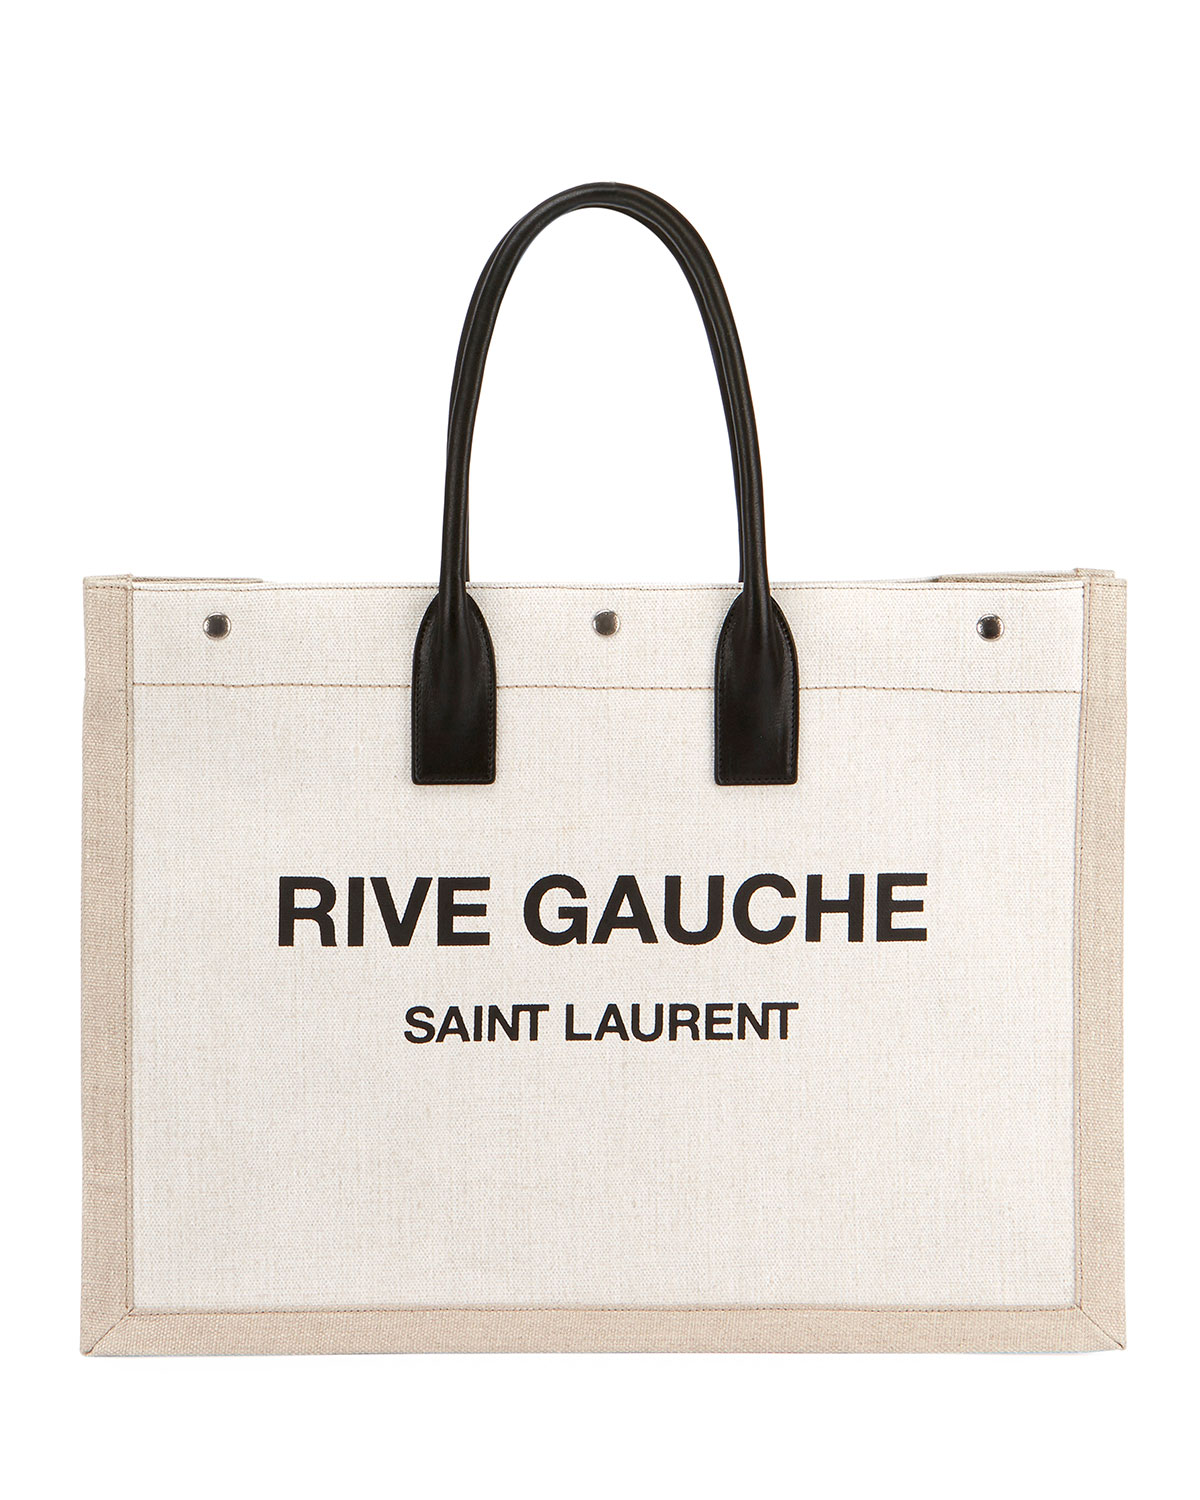 20d2939159 Saint Laurent Noe Cabas Large Rive Gauche Canvas Tote Bag